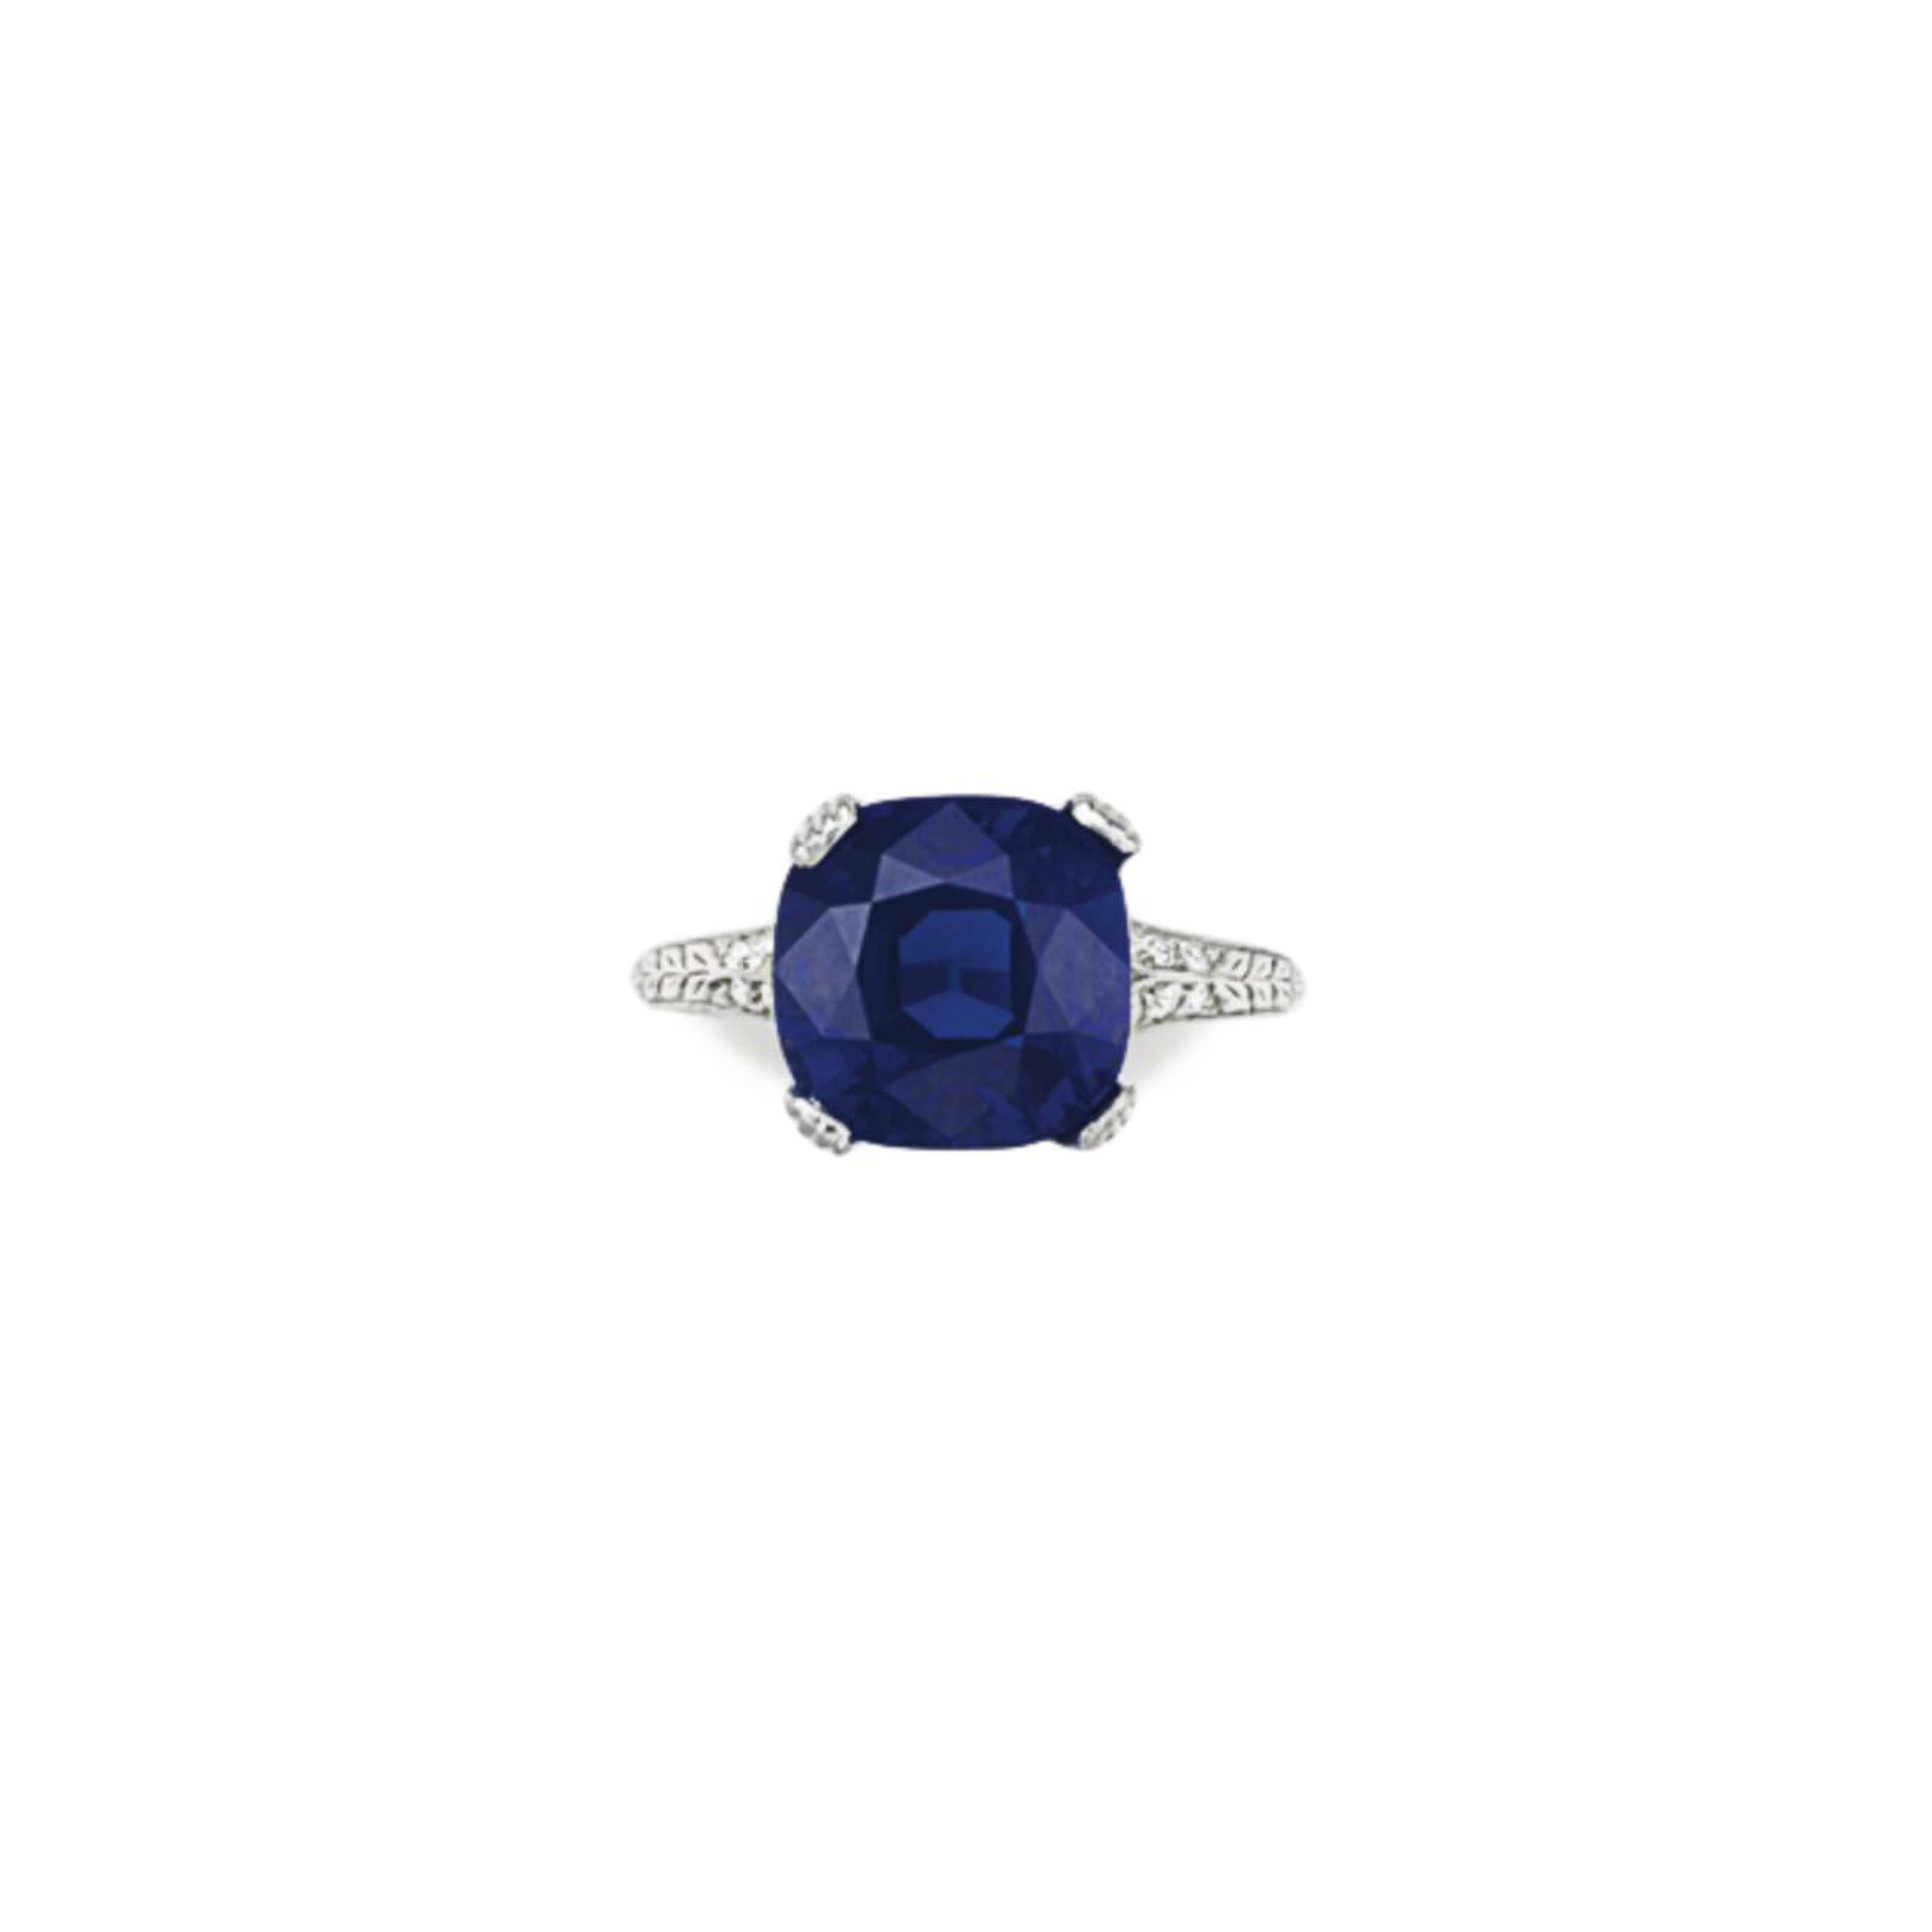 AN ART DECO SAPPHIRE AND DIAMOND RING, BY MARCUS